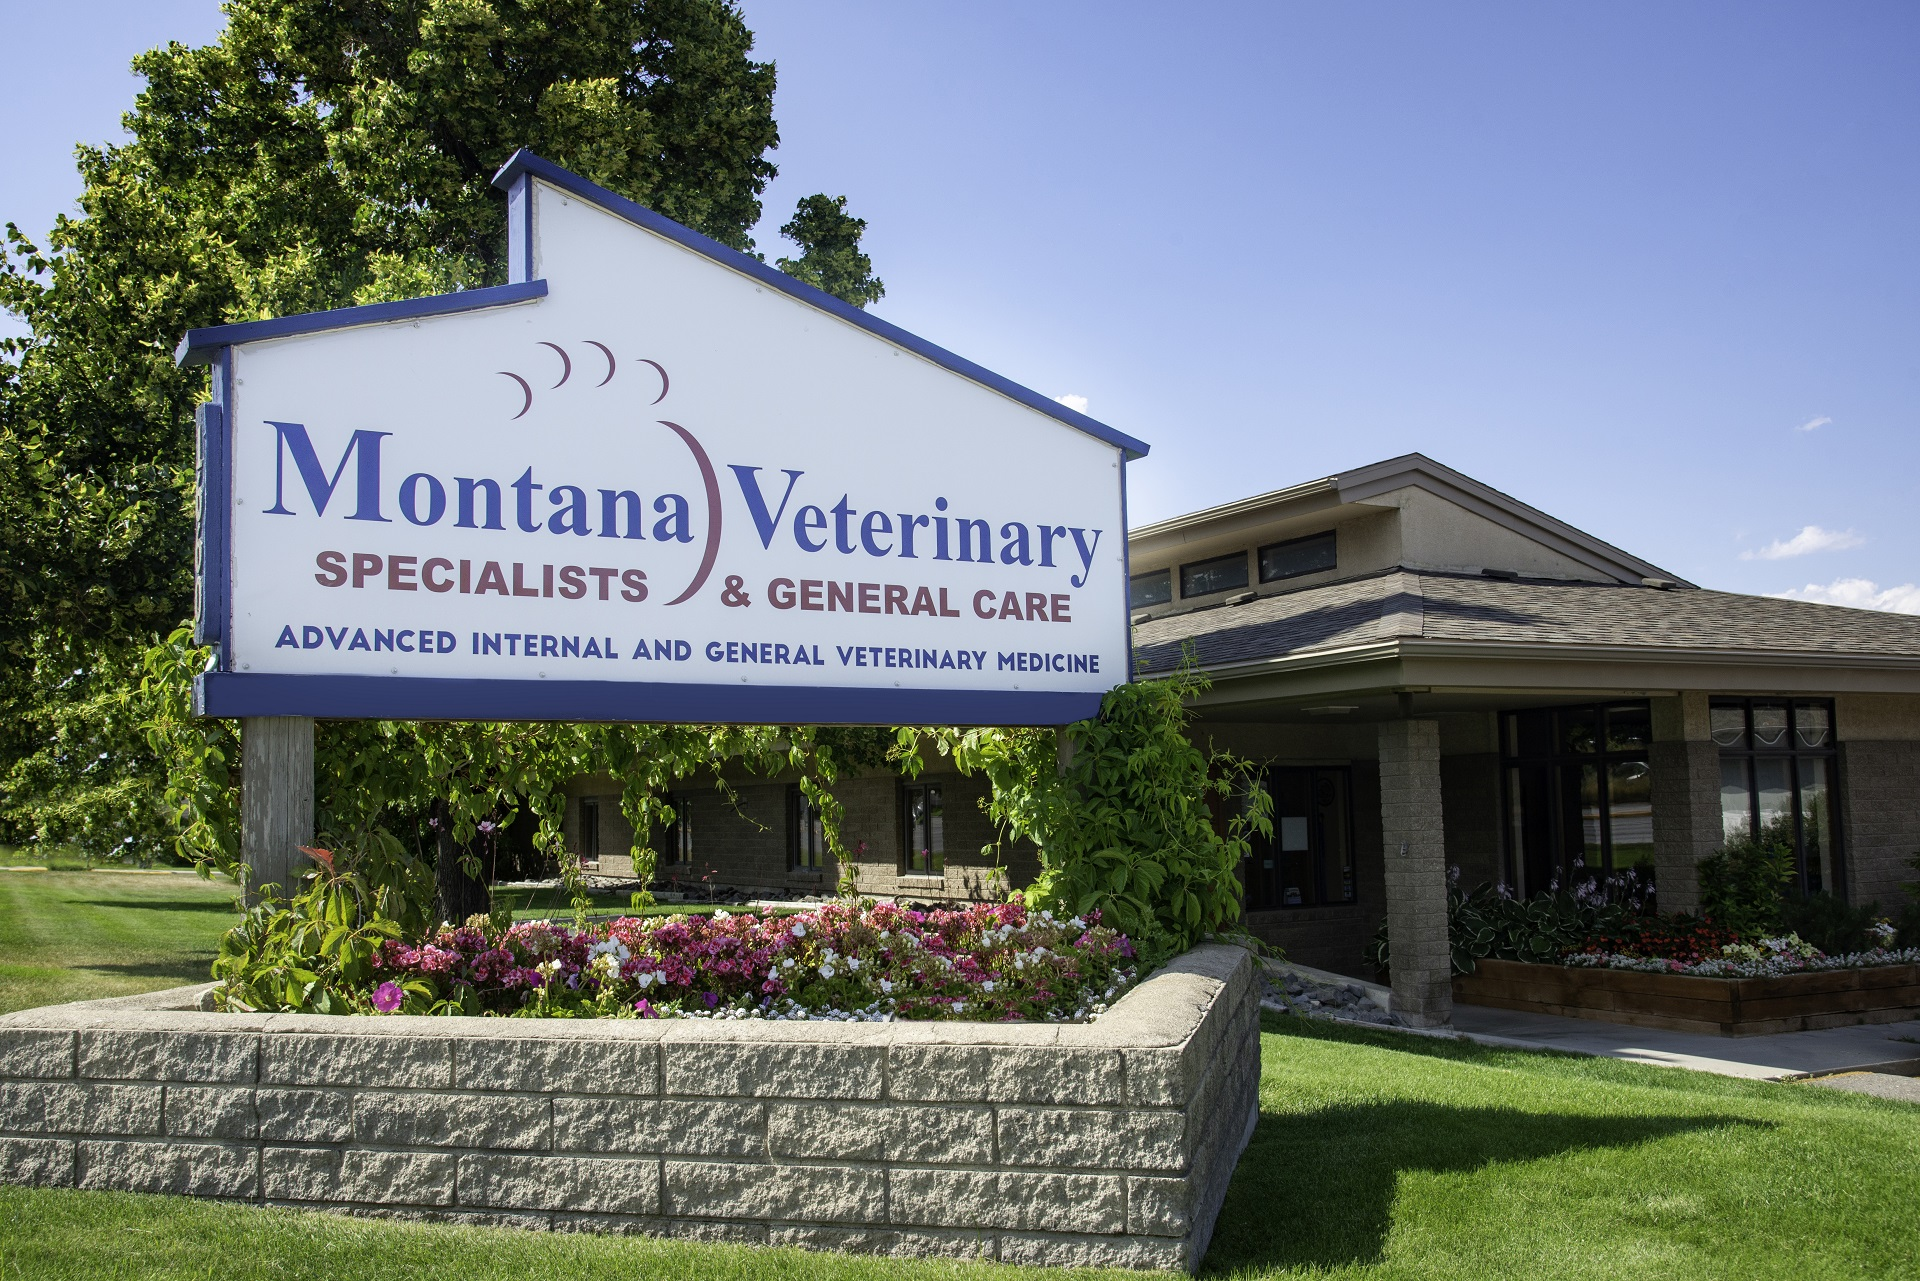 Montana Veterinary Specialists & General Care